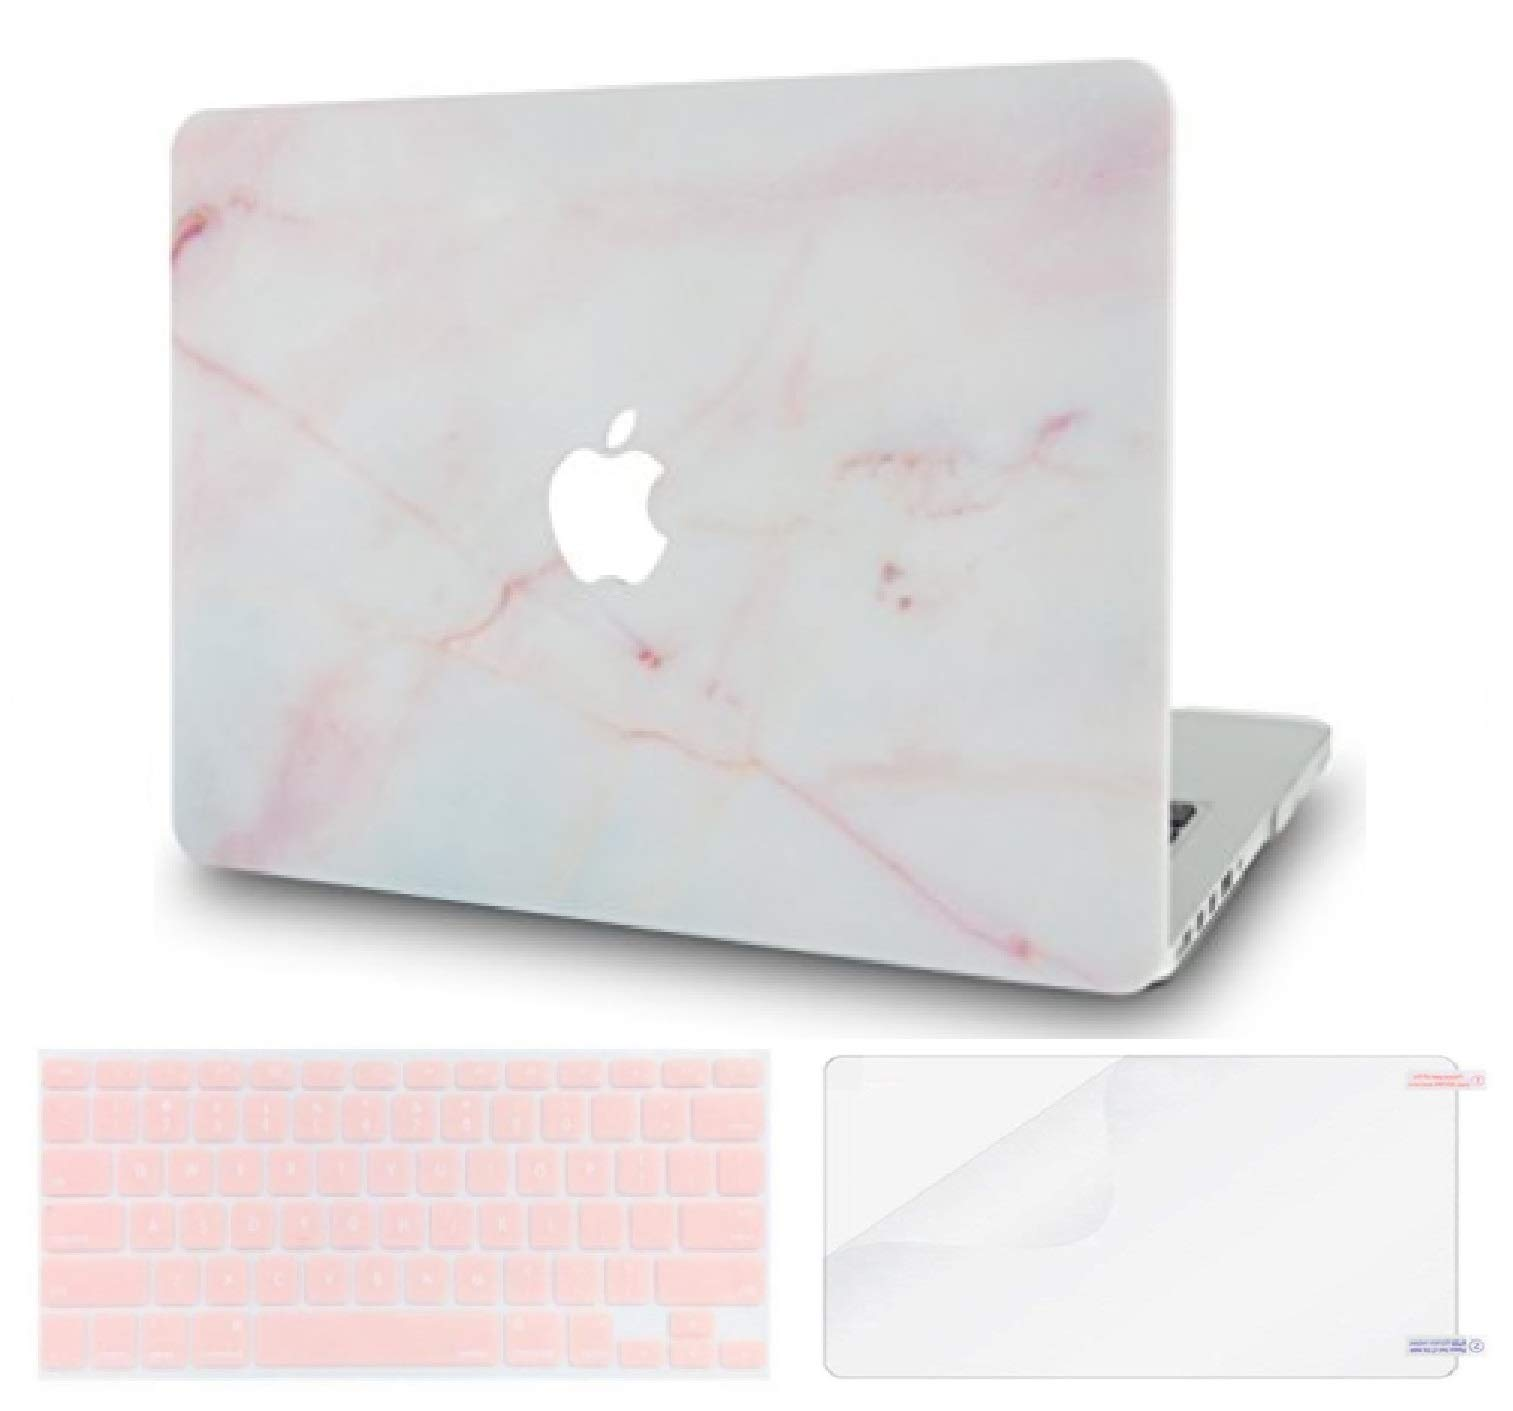 LuvCase 3 in 1 Rubberized Plastic Hard Shell Case with Keyboard Cover and Screen Protector Compatible MacBook Air 13 Inch 2019/2018 New Version A1932 with Retina Display (Touch ID) (Pink Marble)